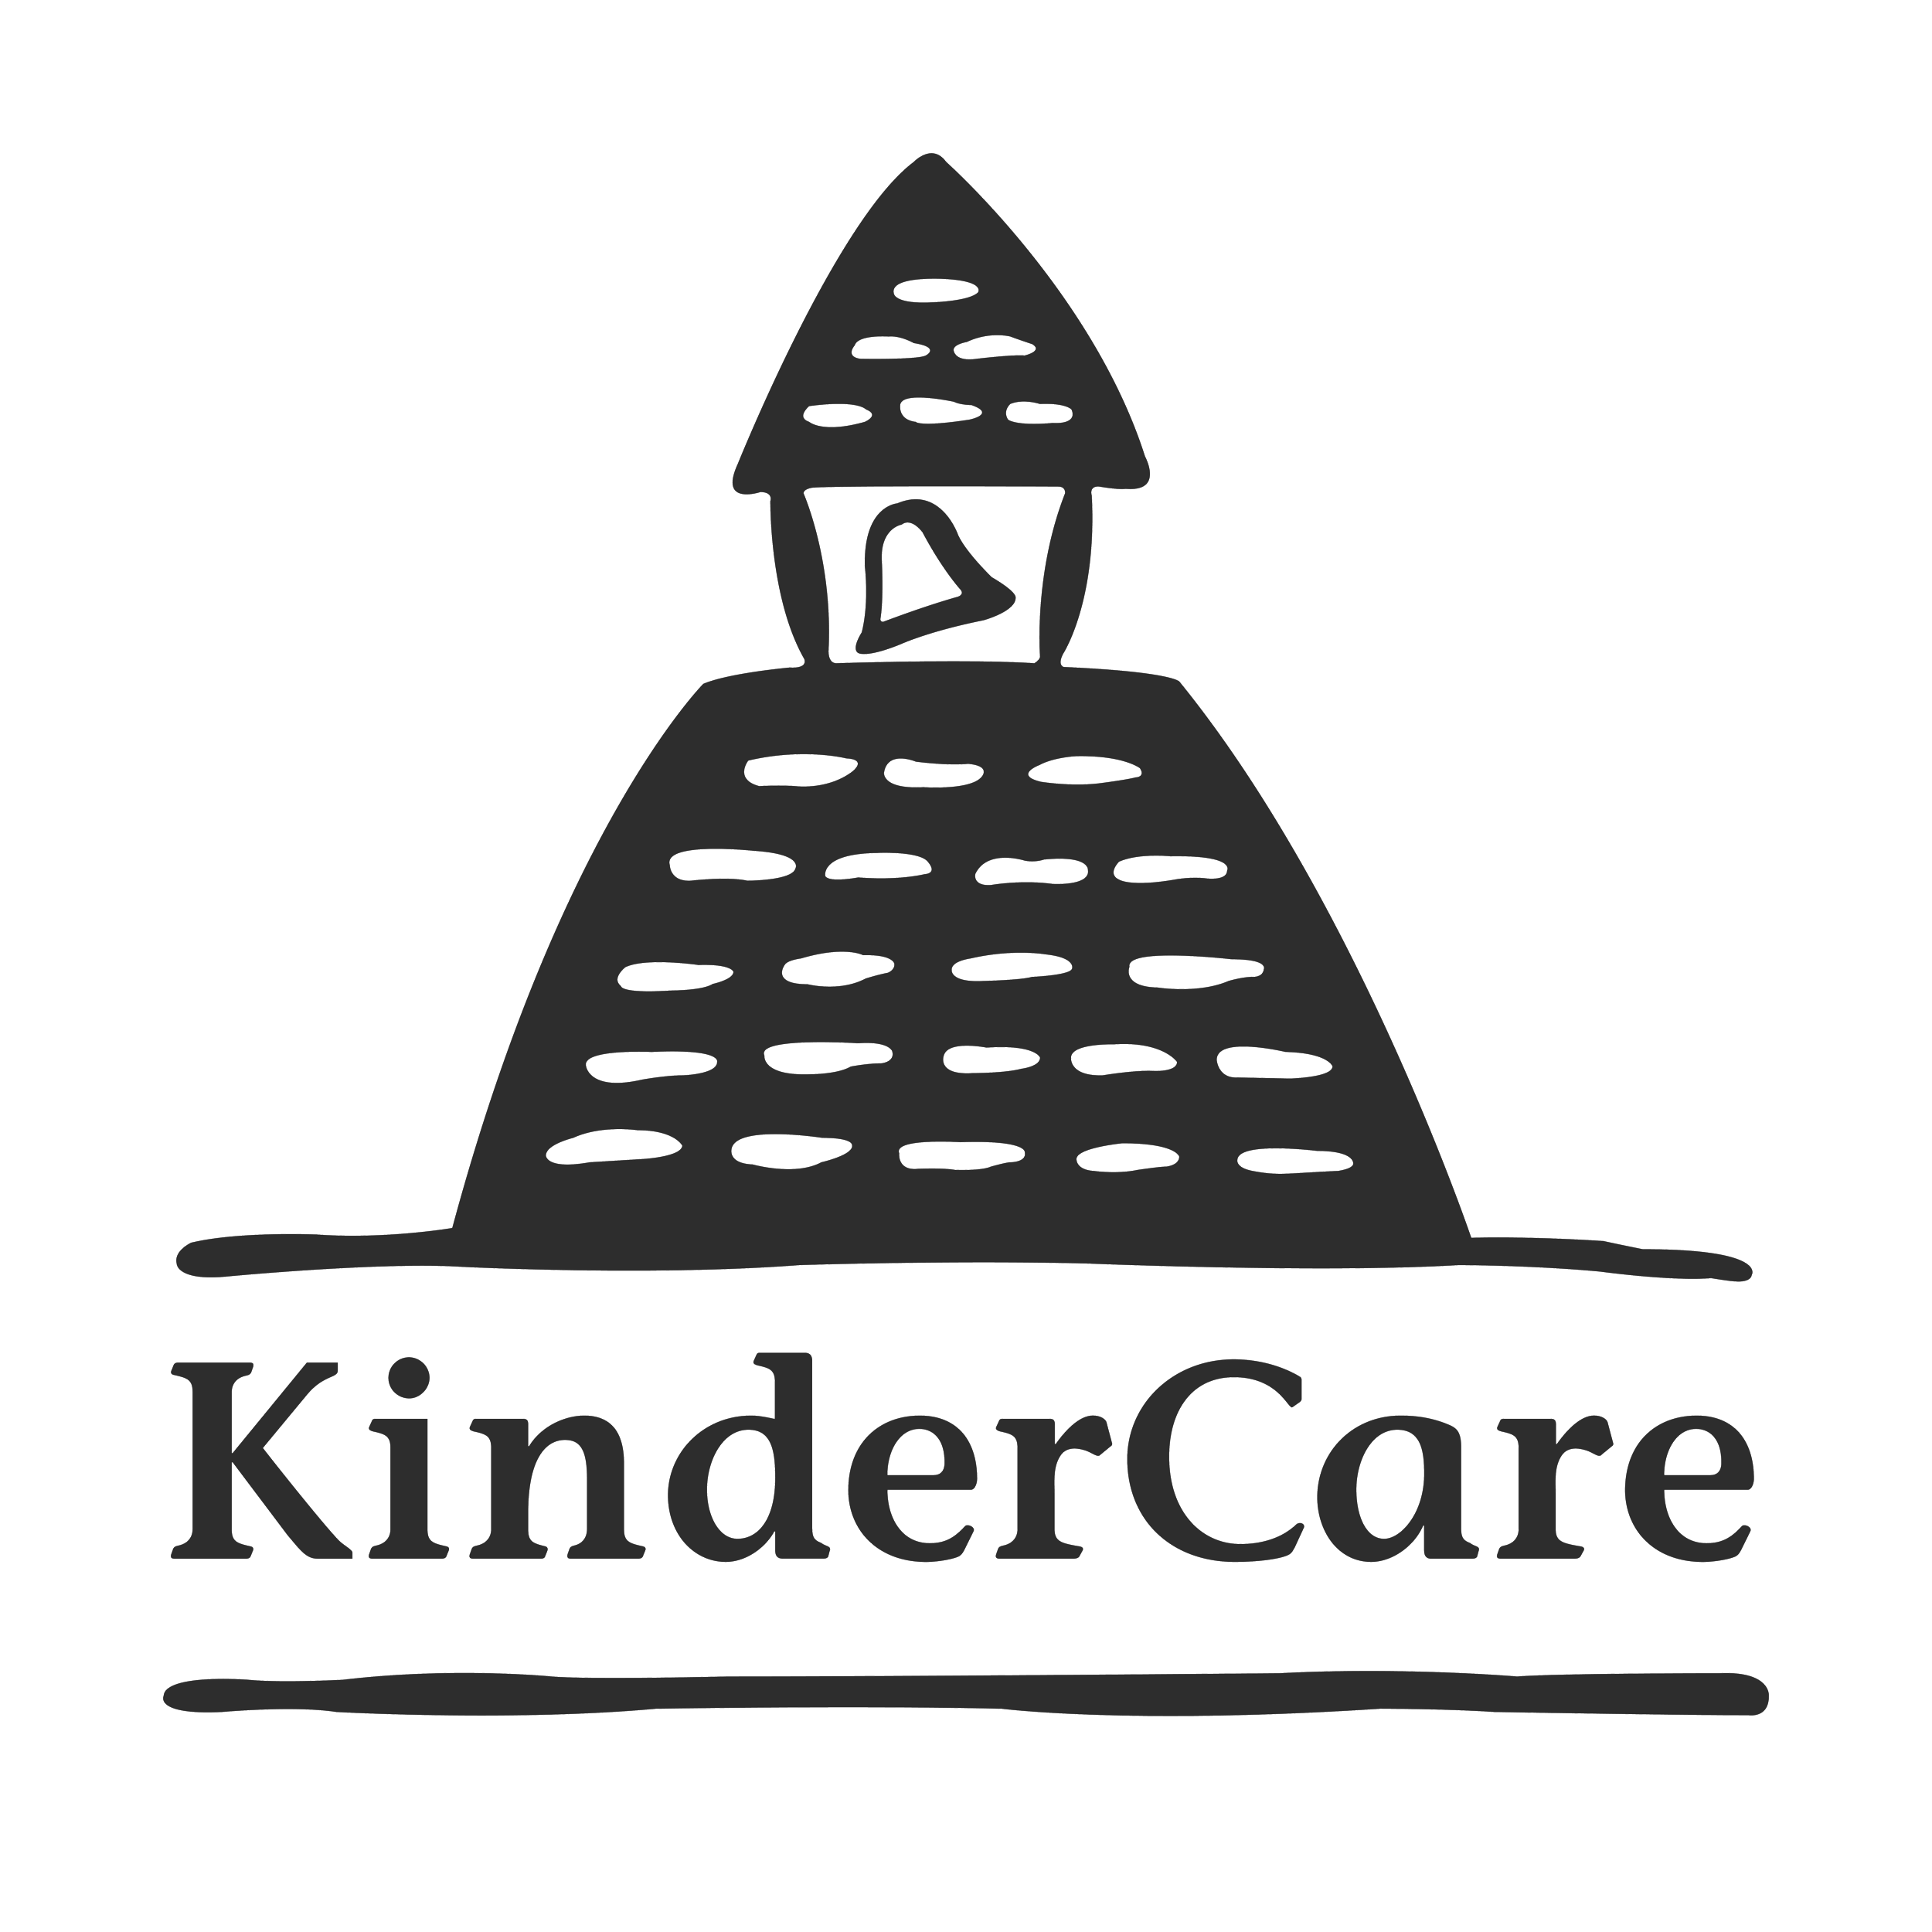 KinderCare_BW.png